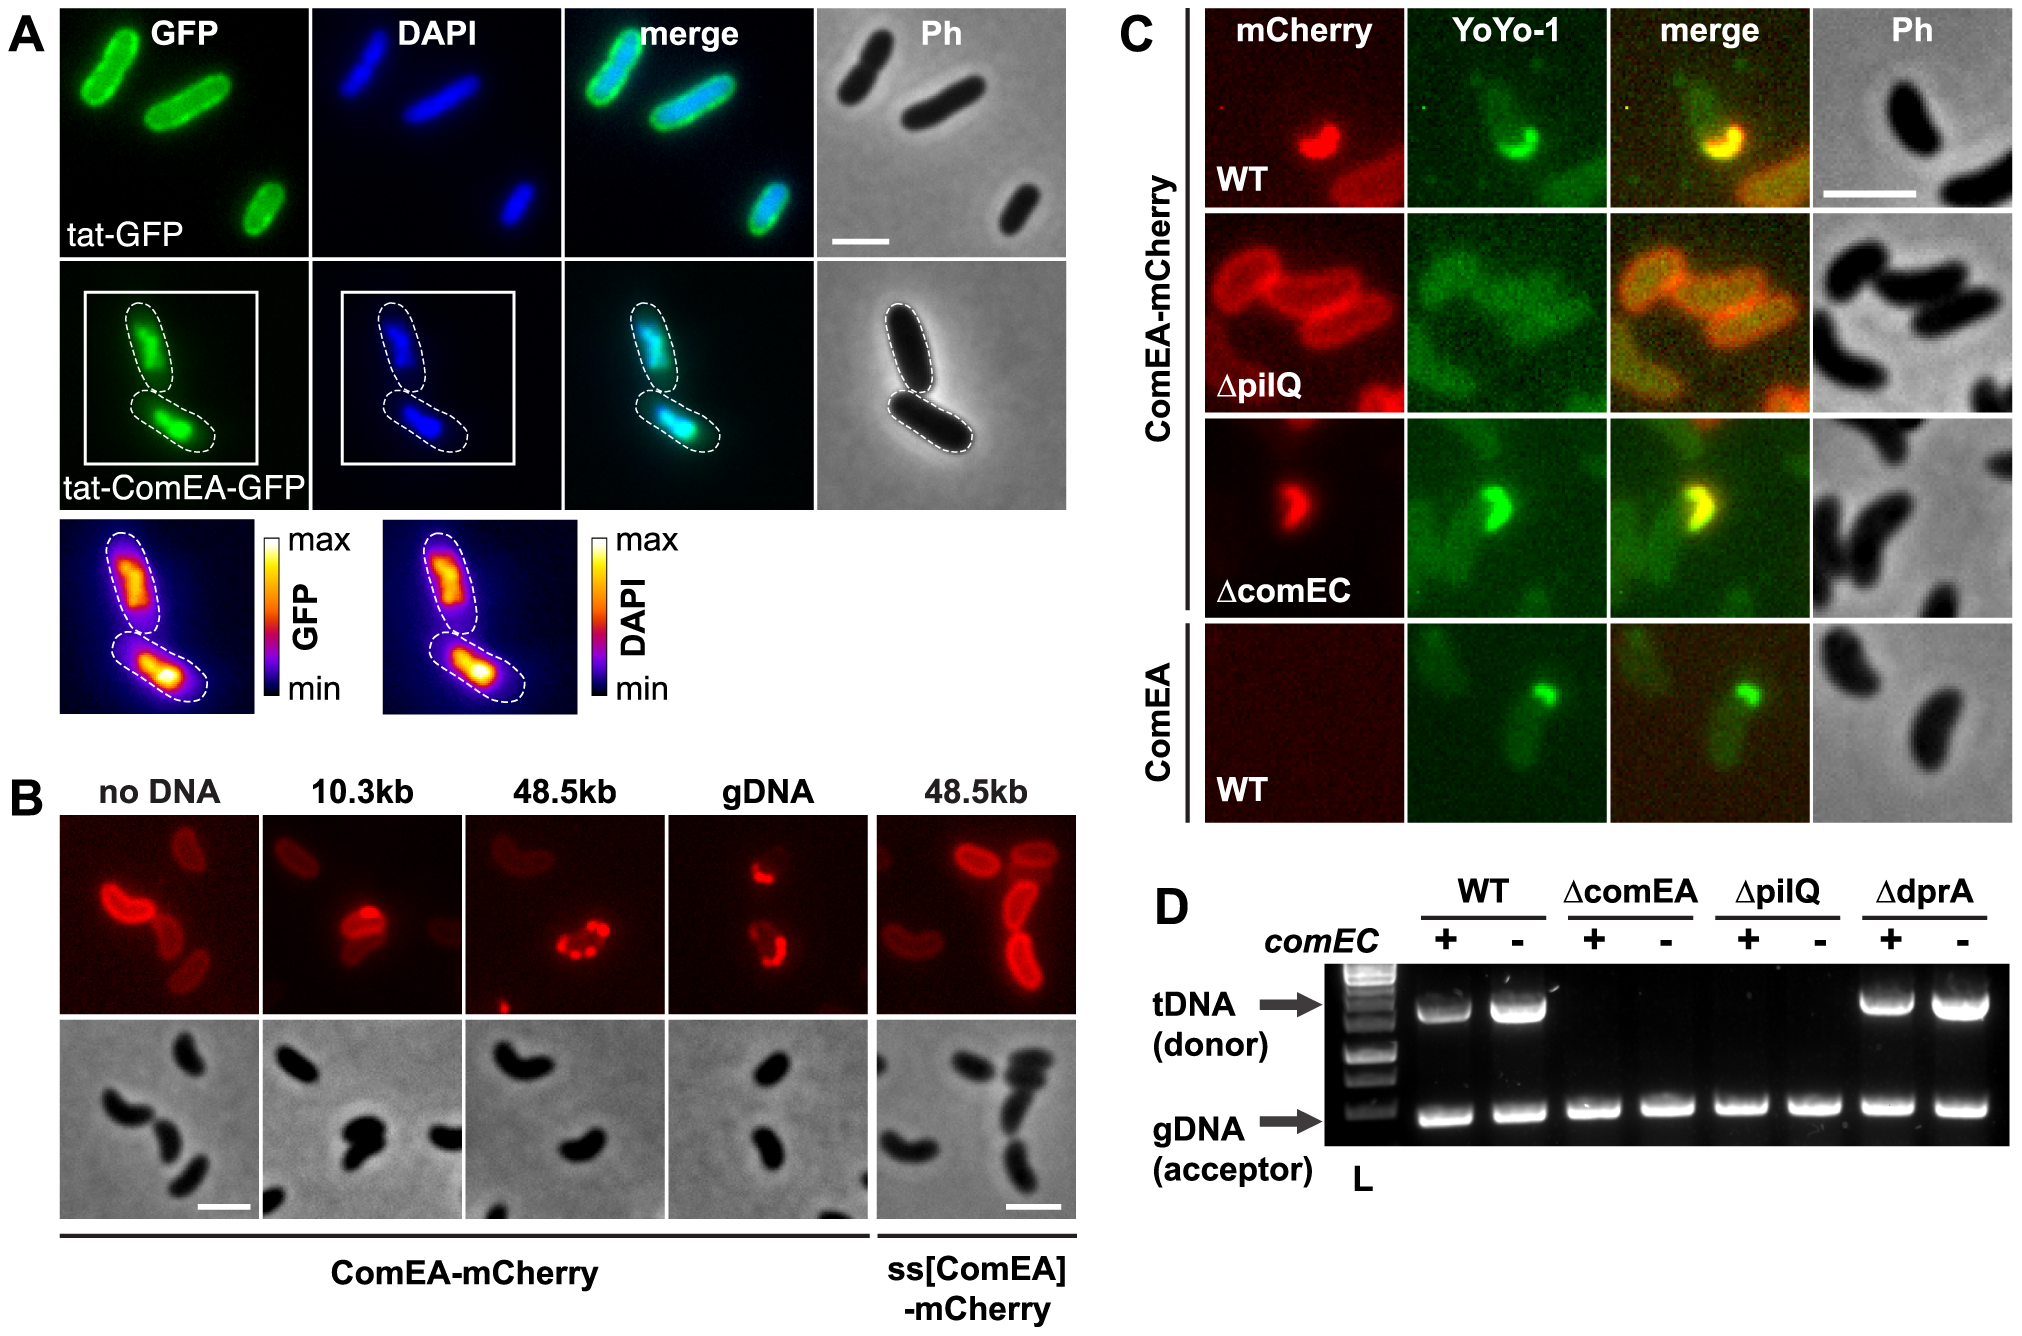 ComEA binds to DNA <i>in vivo</i>.